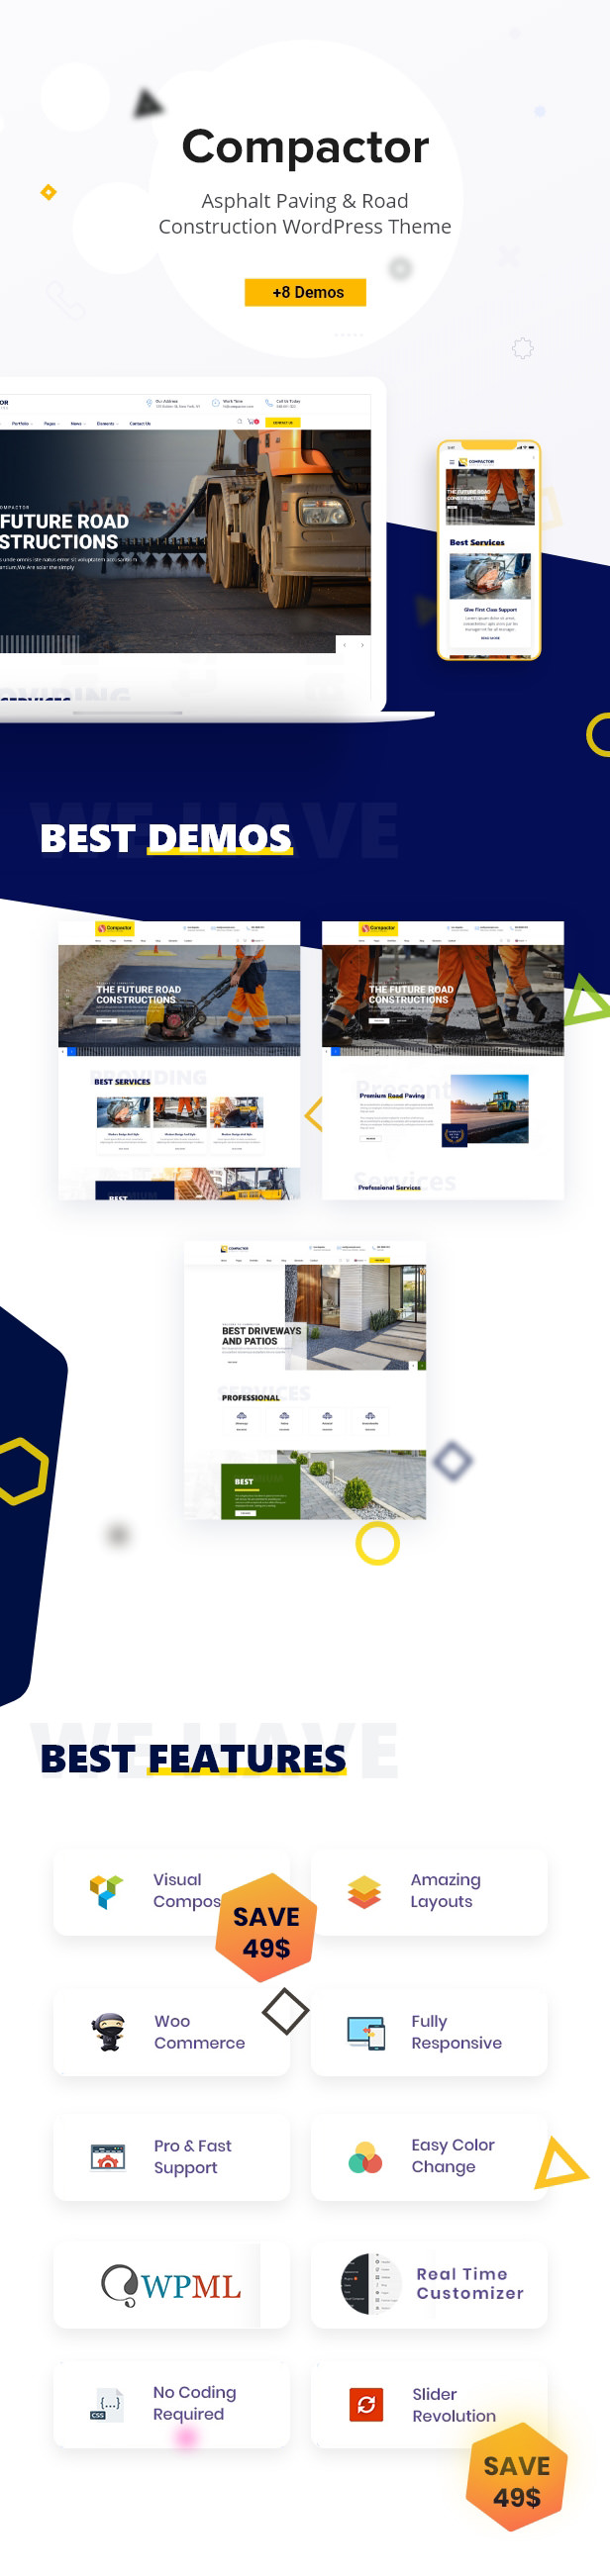 Compactor - Asphalt paving & Road construction WordPress Theme